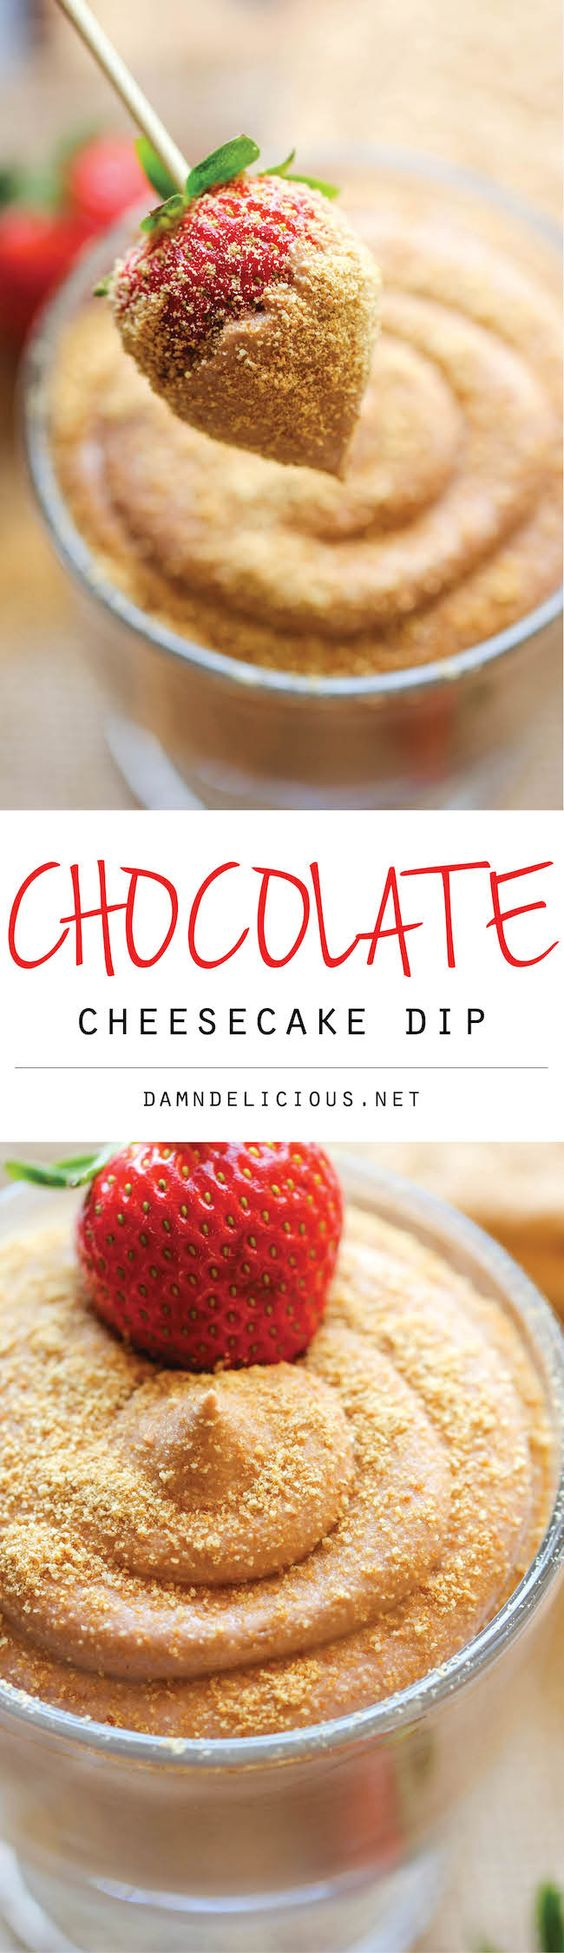 Chocolate Cheesecake Dip Recipe via Damn Delicious